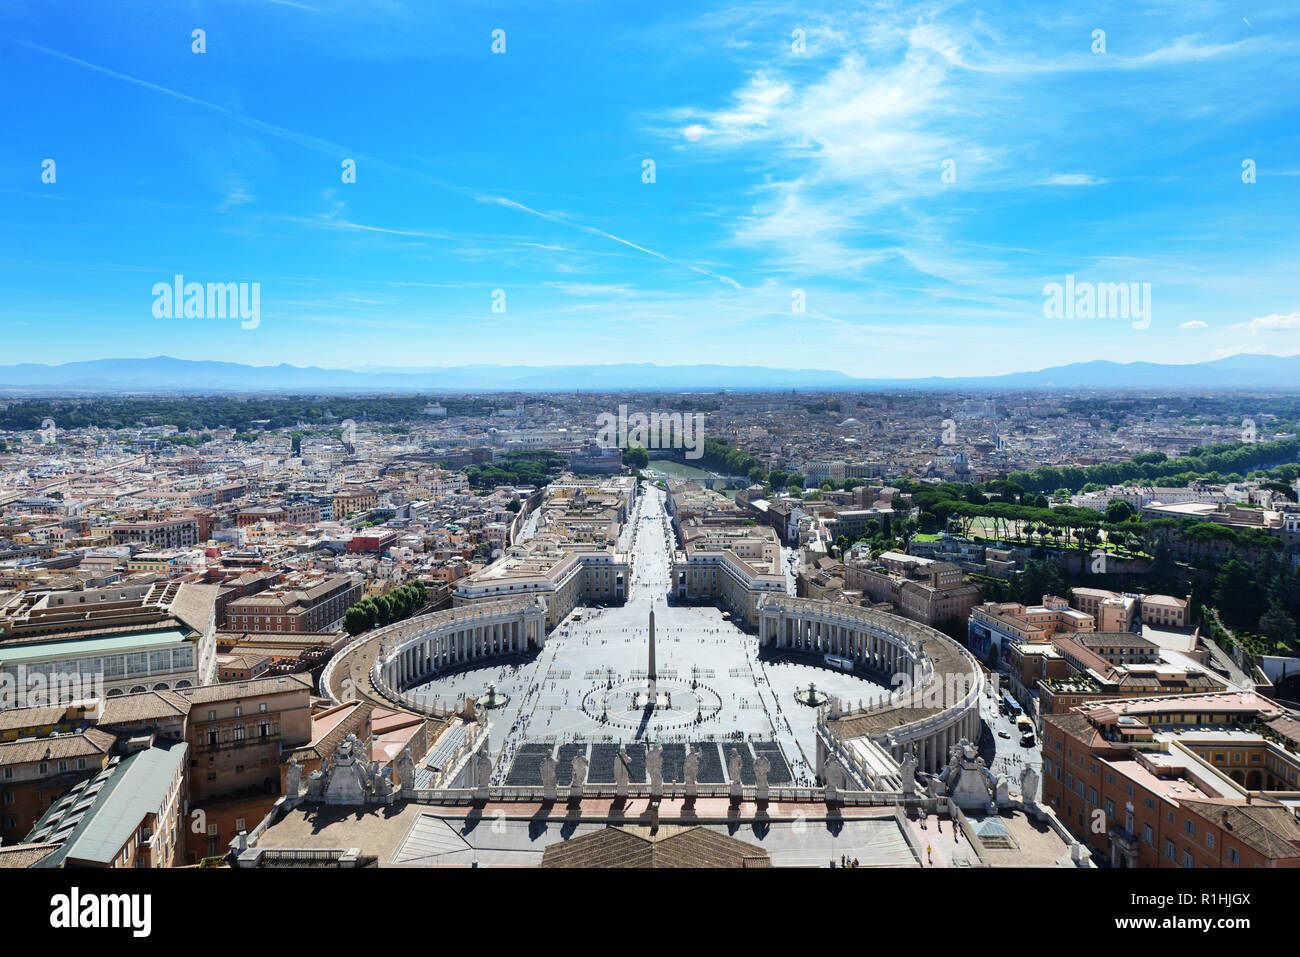 A view of Saint Peter's sq. and Rome as seen from the top of the dome of the Saint Peter's Basilica. - Stock Image